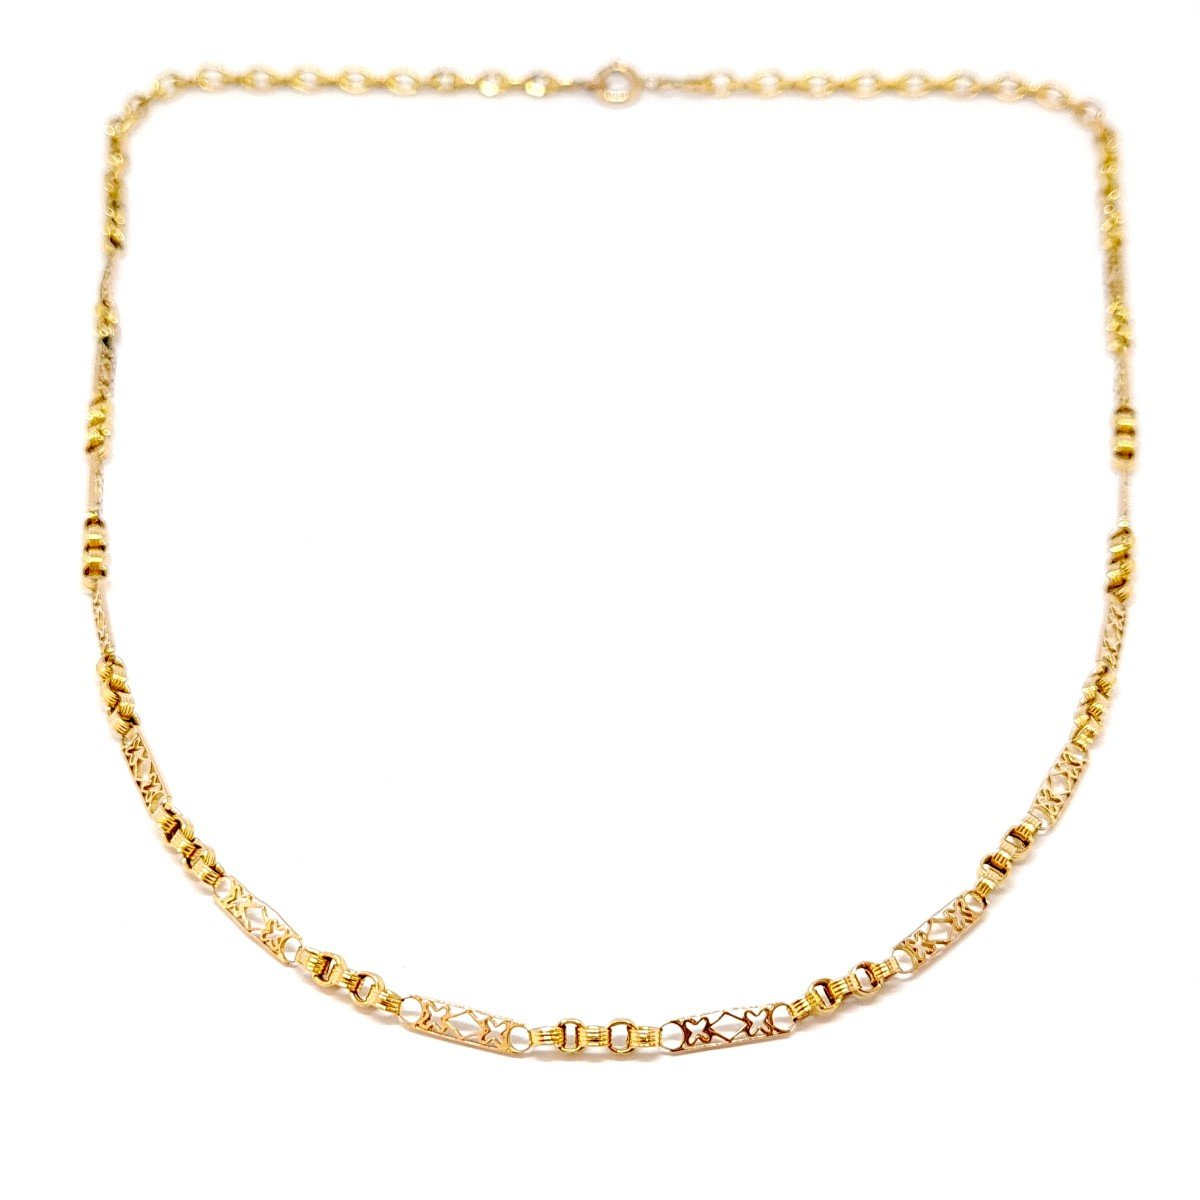 Collier Ancien Or Jaune 18 Carats